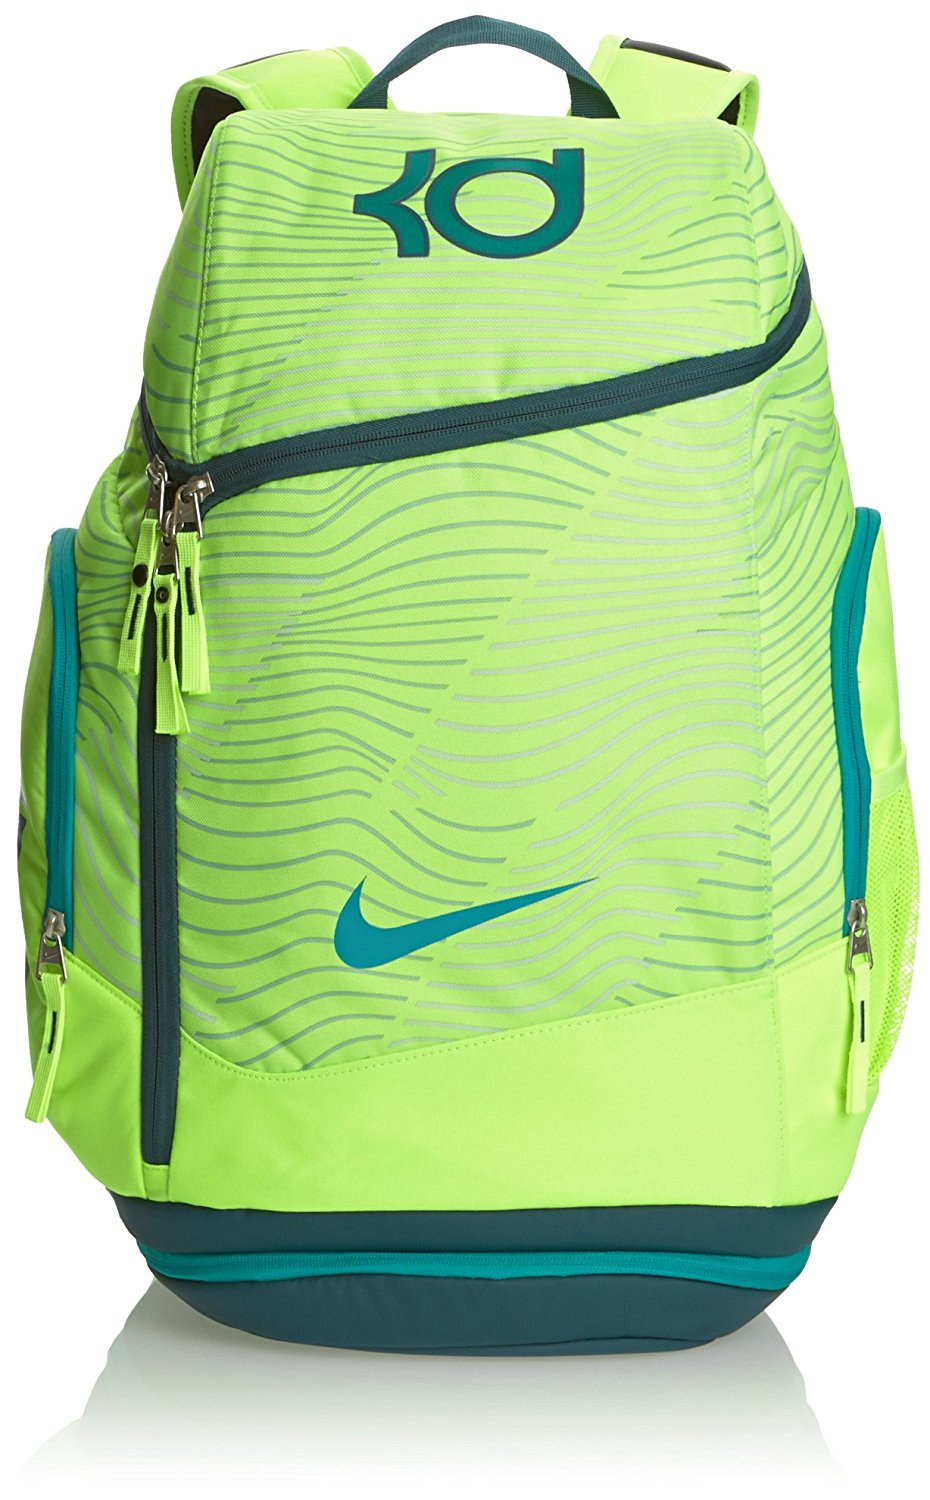 a50084378995 Get Quotations · Nike Unisex KD Max Air Basketball Backpack BA4853